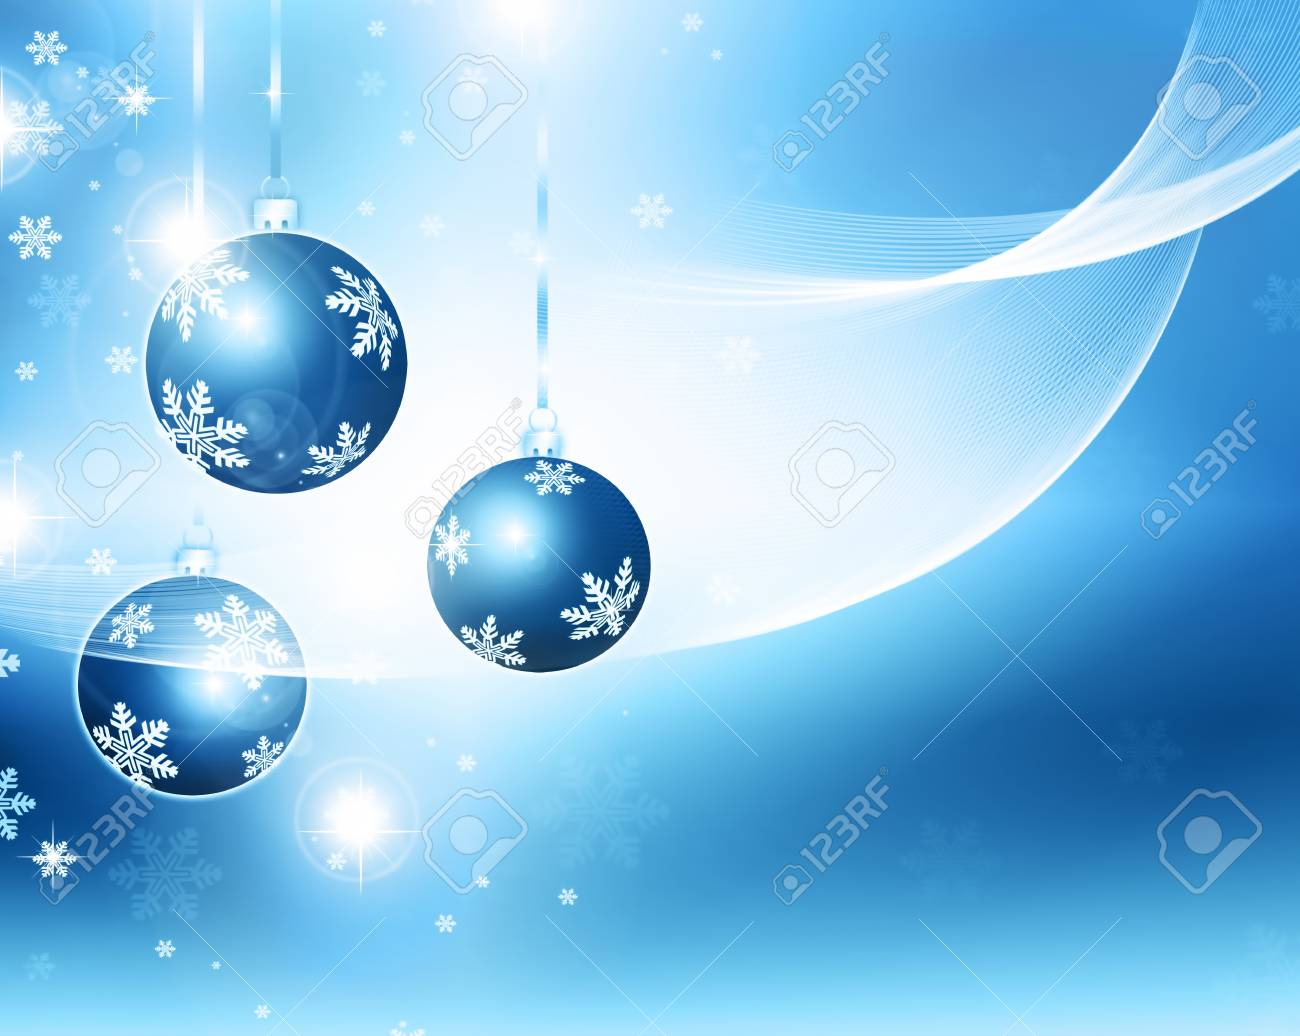 christmas background blue balls stock photo picture and royalty free image image 69721707 christmas background blue balls